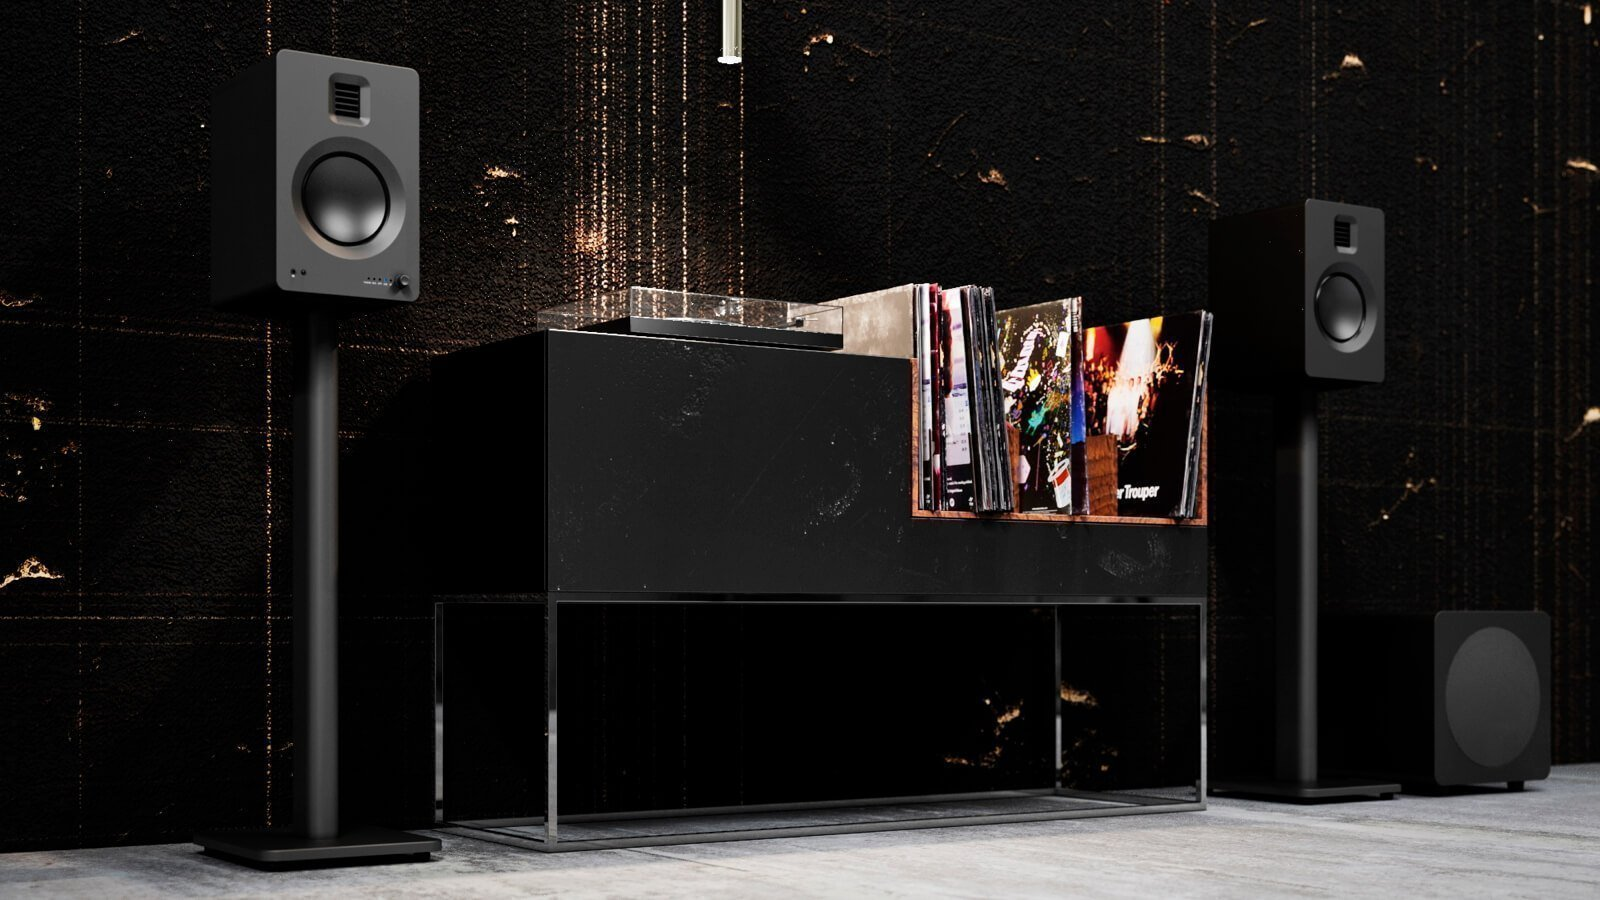 Kanto TUK Powered Bookshelf Speakers feature sparkling highs and rich bass